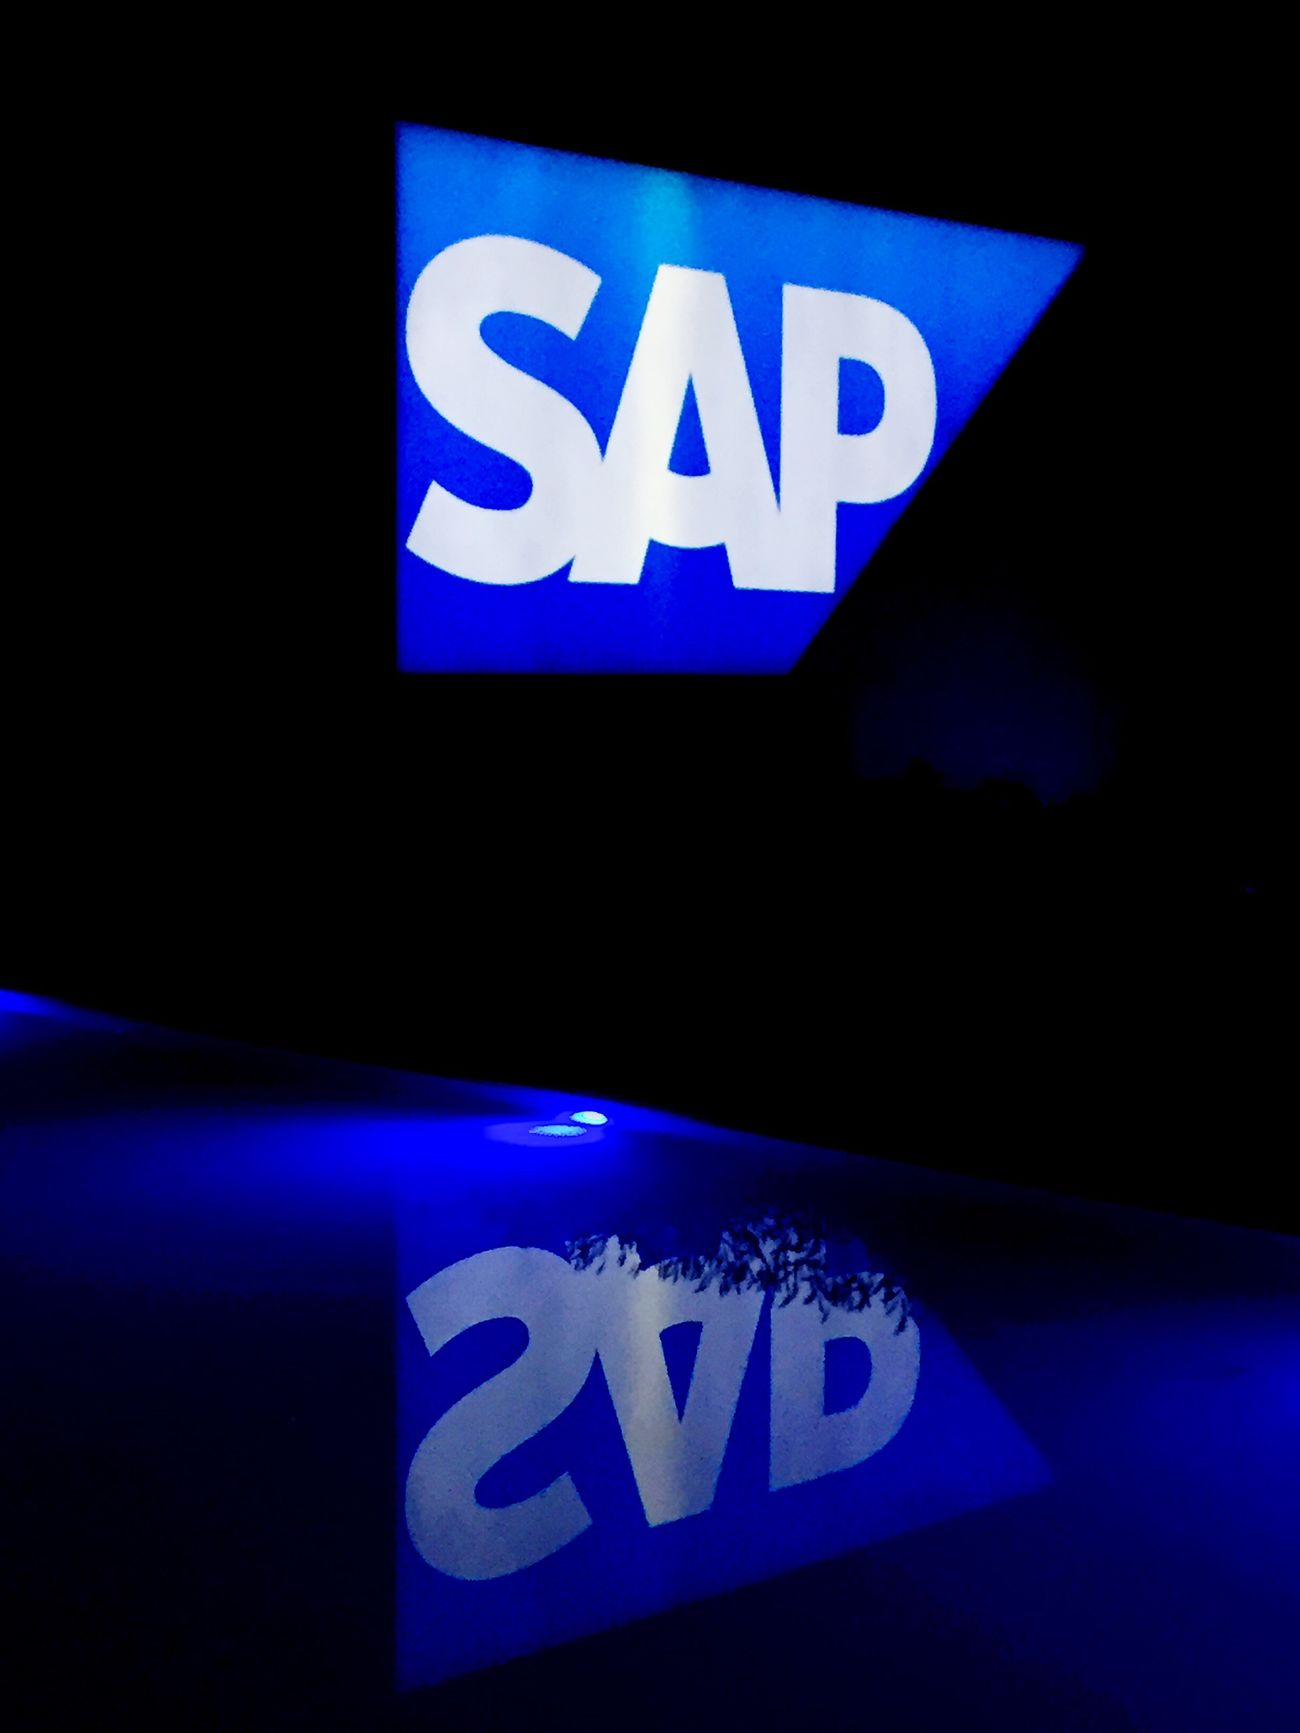 SAP logo with reflexions in the water, below. Sap Logo Walldorf Badenwürttemberg Germany Company Corporation Course Quality Management Normanrupp